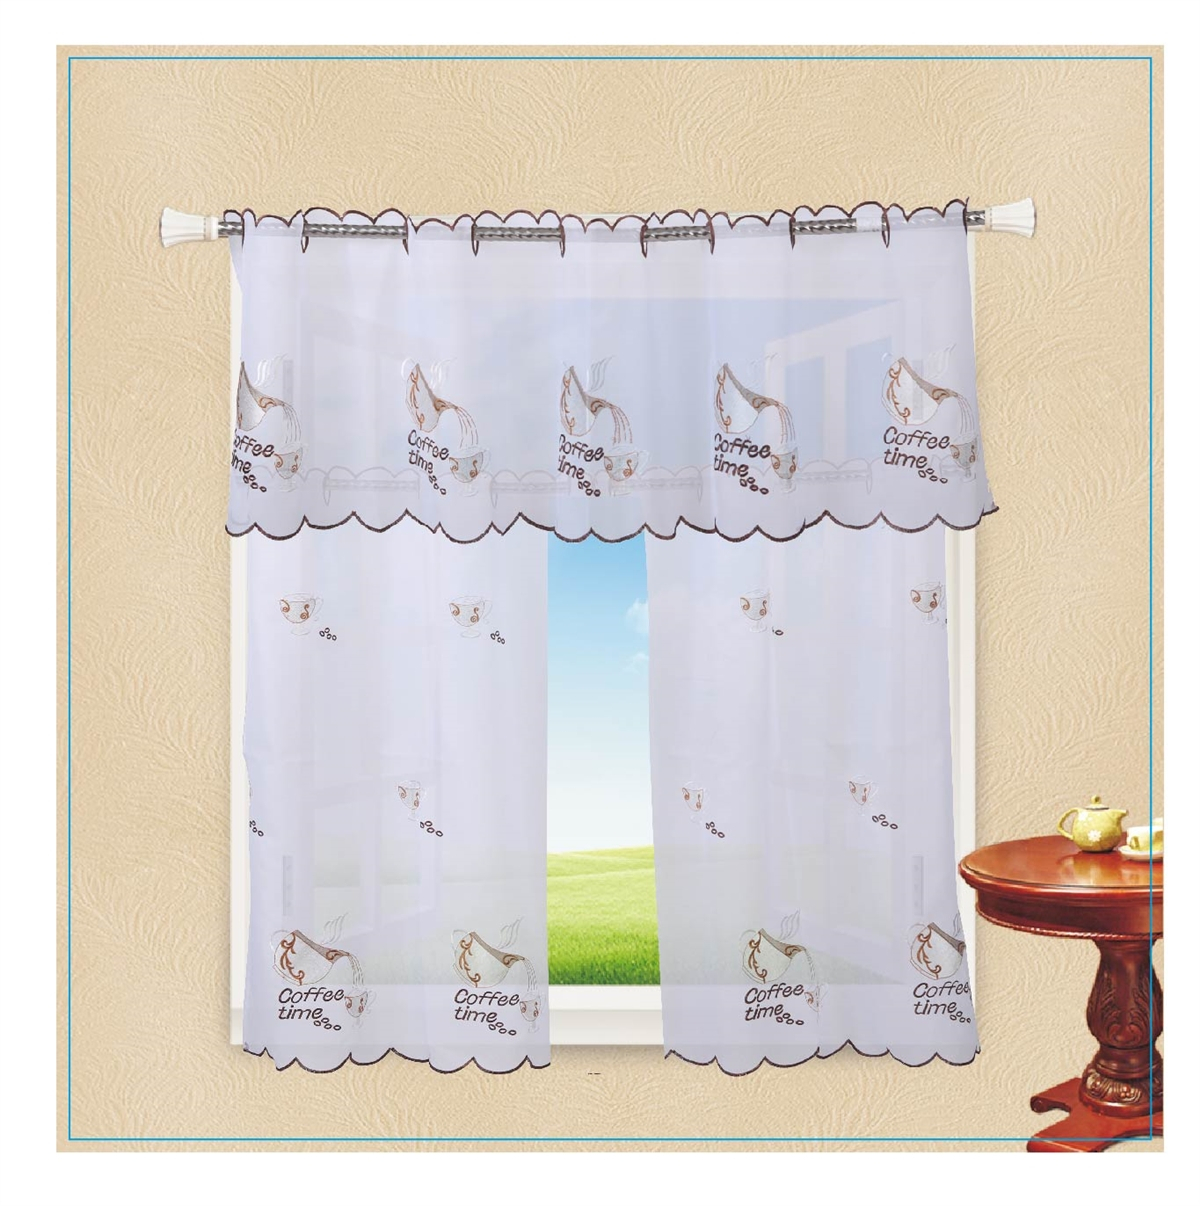 Violet Linen Ornate Sheer With Embroidered Flowers Design 3 Piece Kitchen Curtain Set – White Intended For Microfiber 3 Piece Kitchen Curtain Valance And Tiers Sets (View 20 of 20)